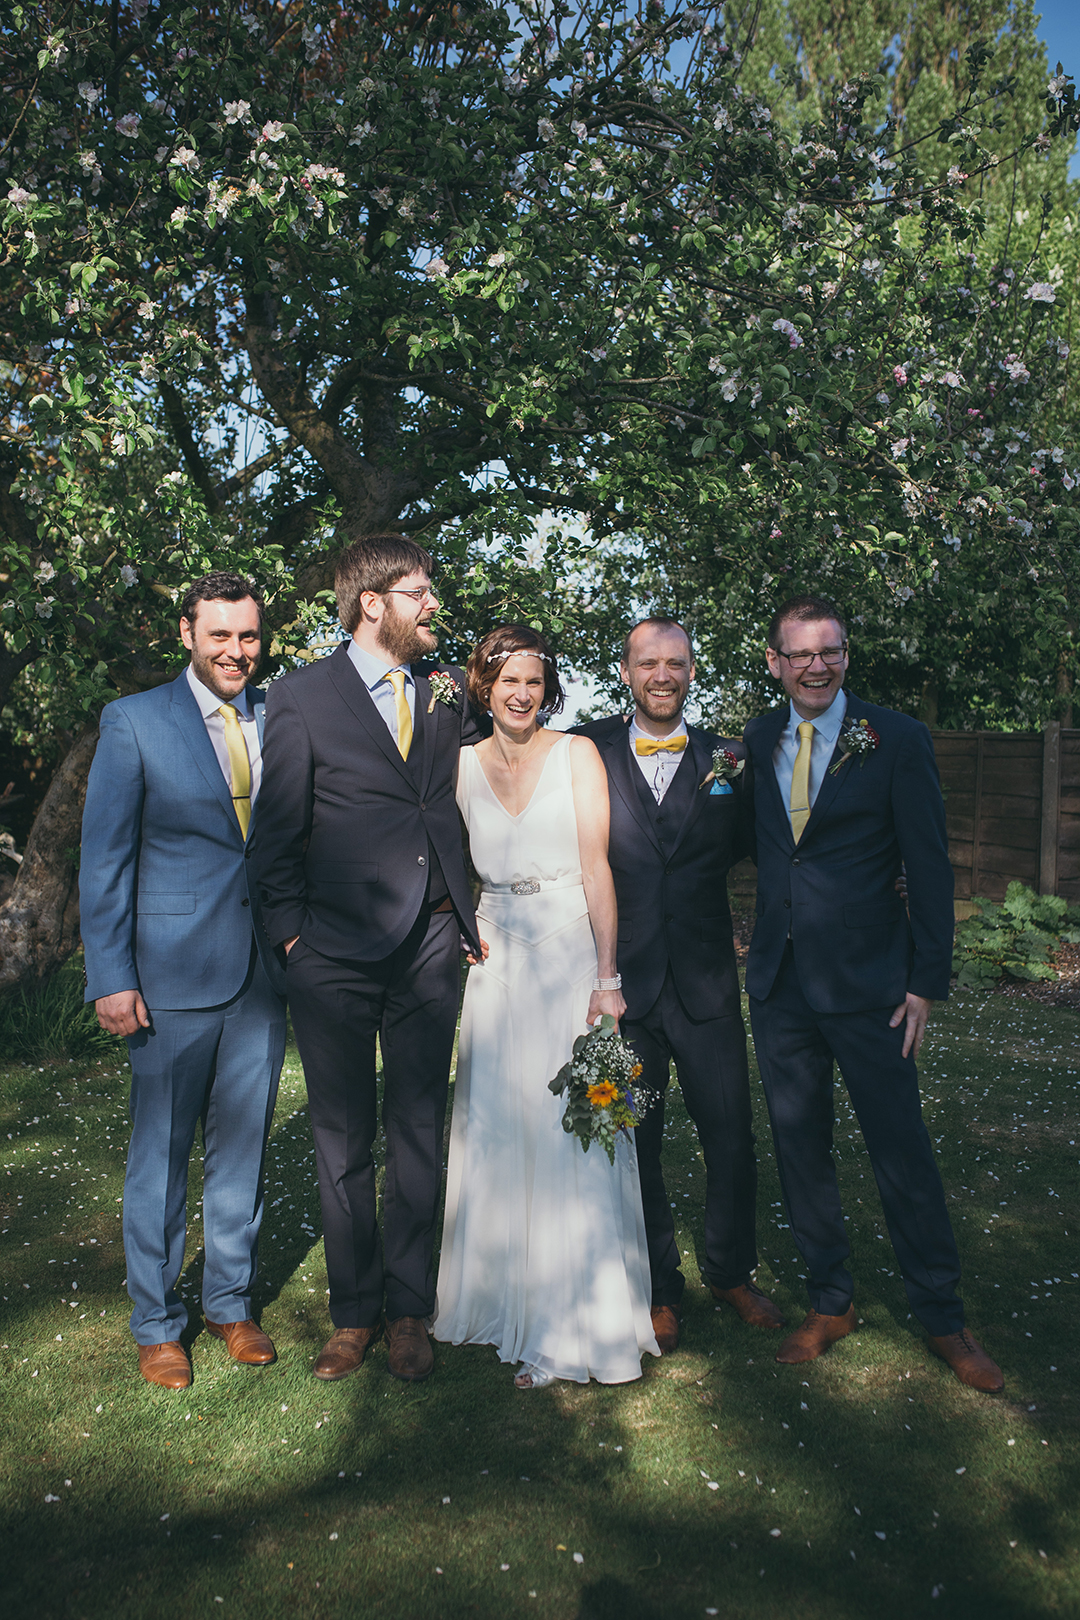 bride and groom with best man and ushers at a festival style wedding